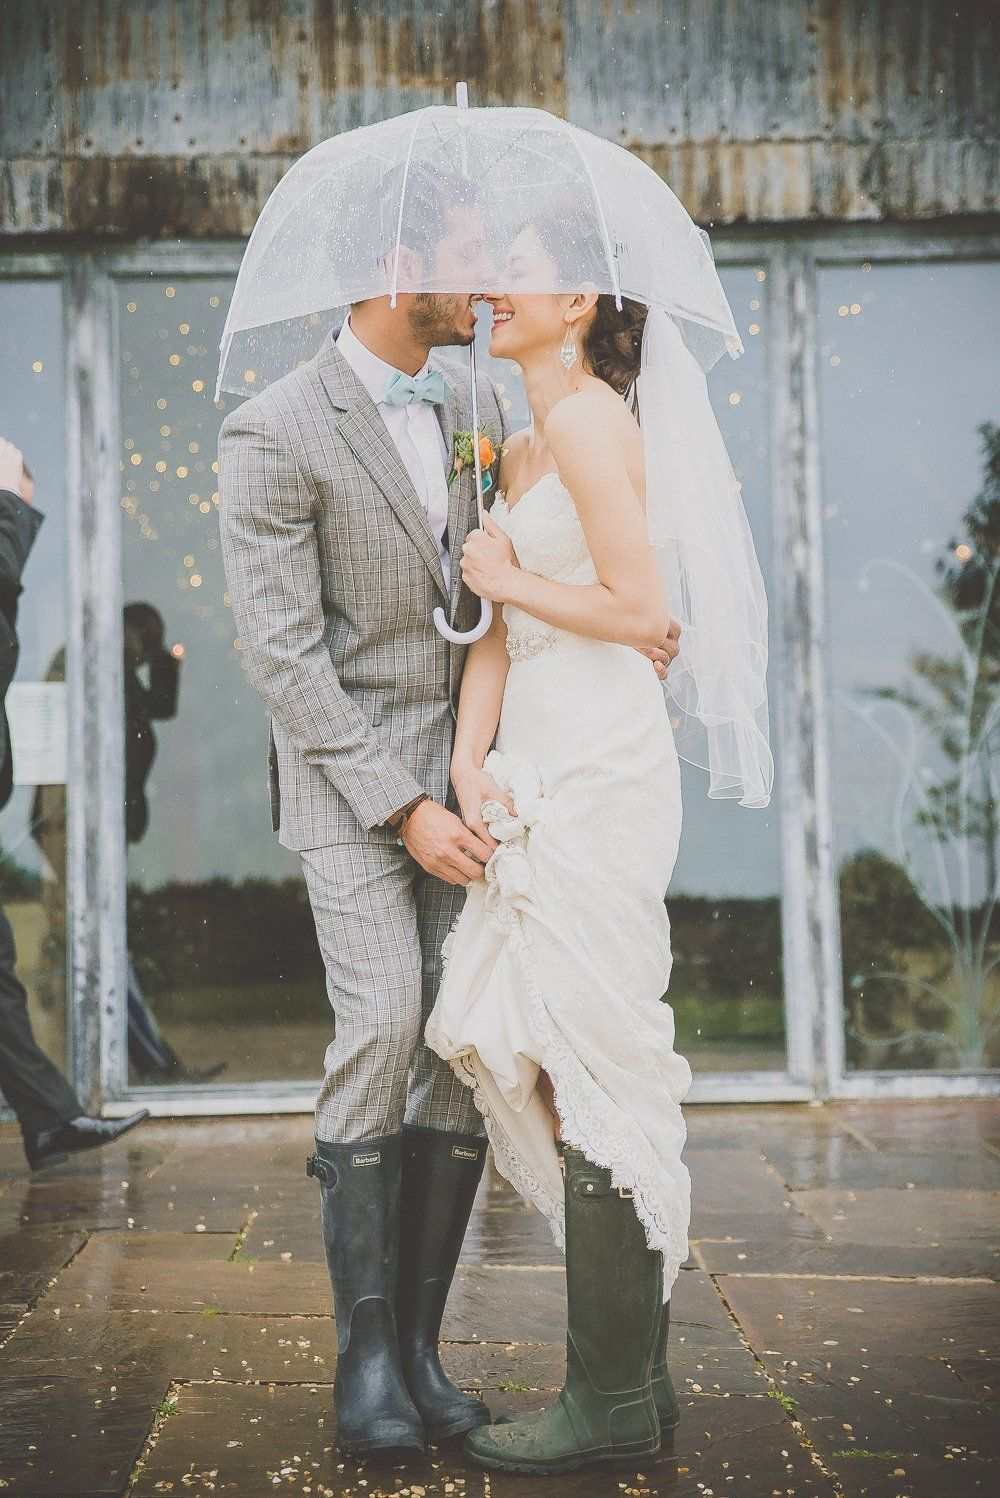 Rainy wedding photos coral shoes baby blue dresses and stone barns